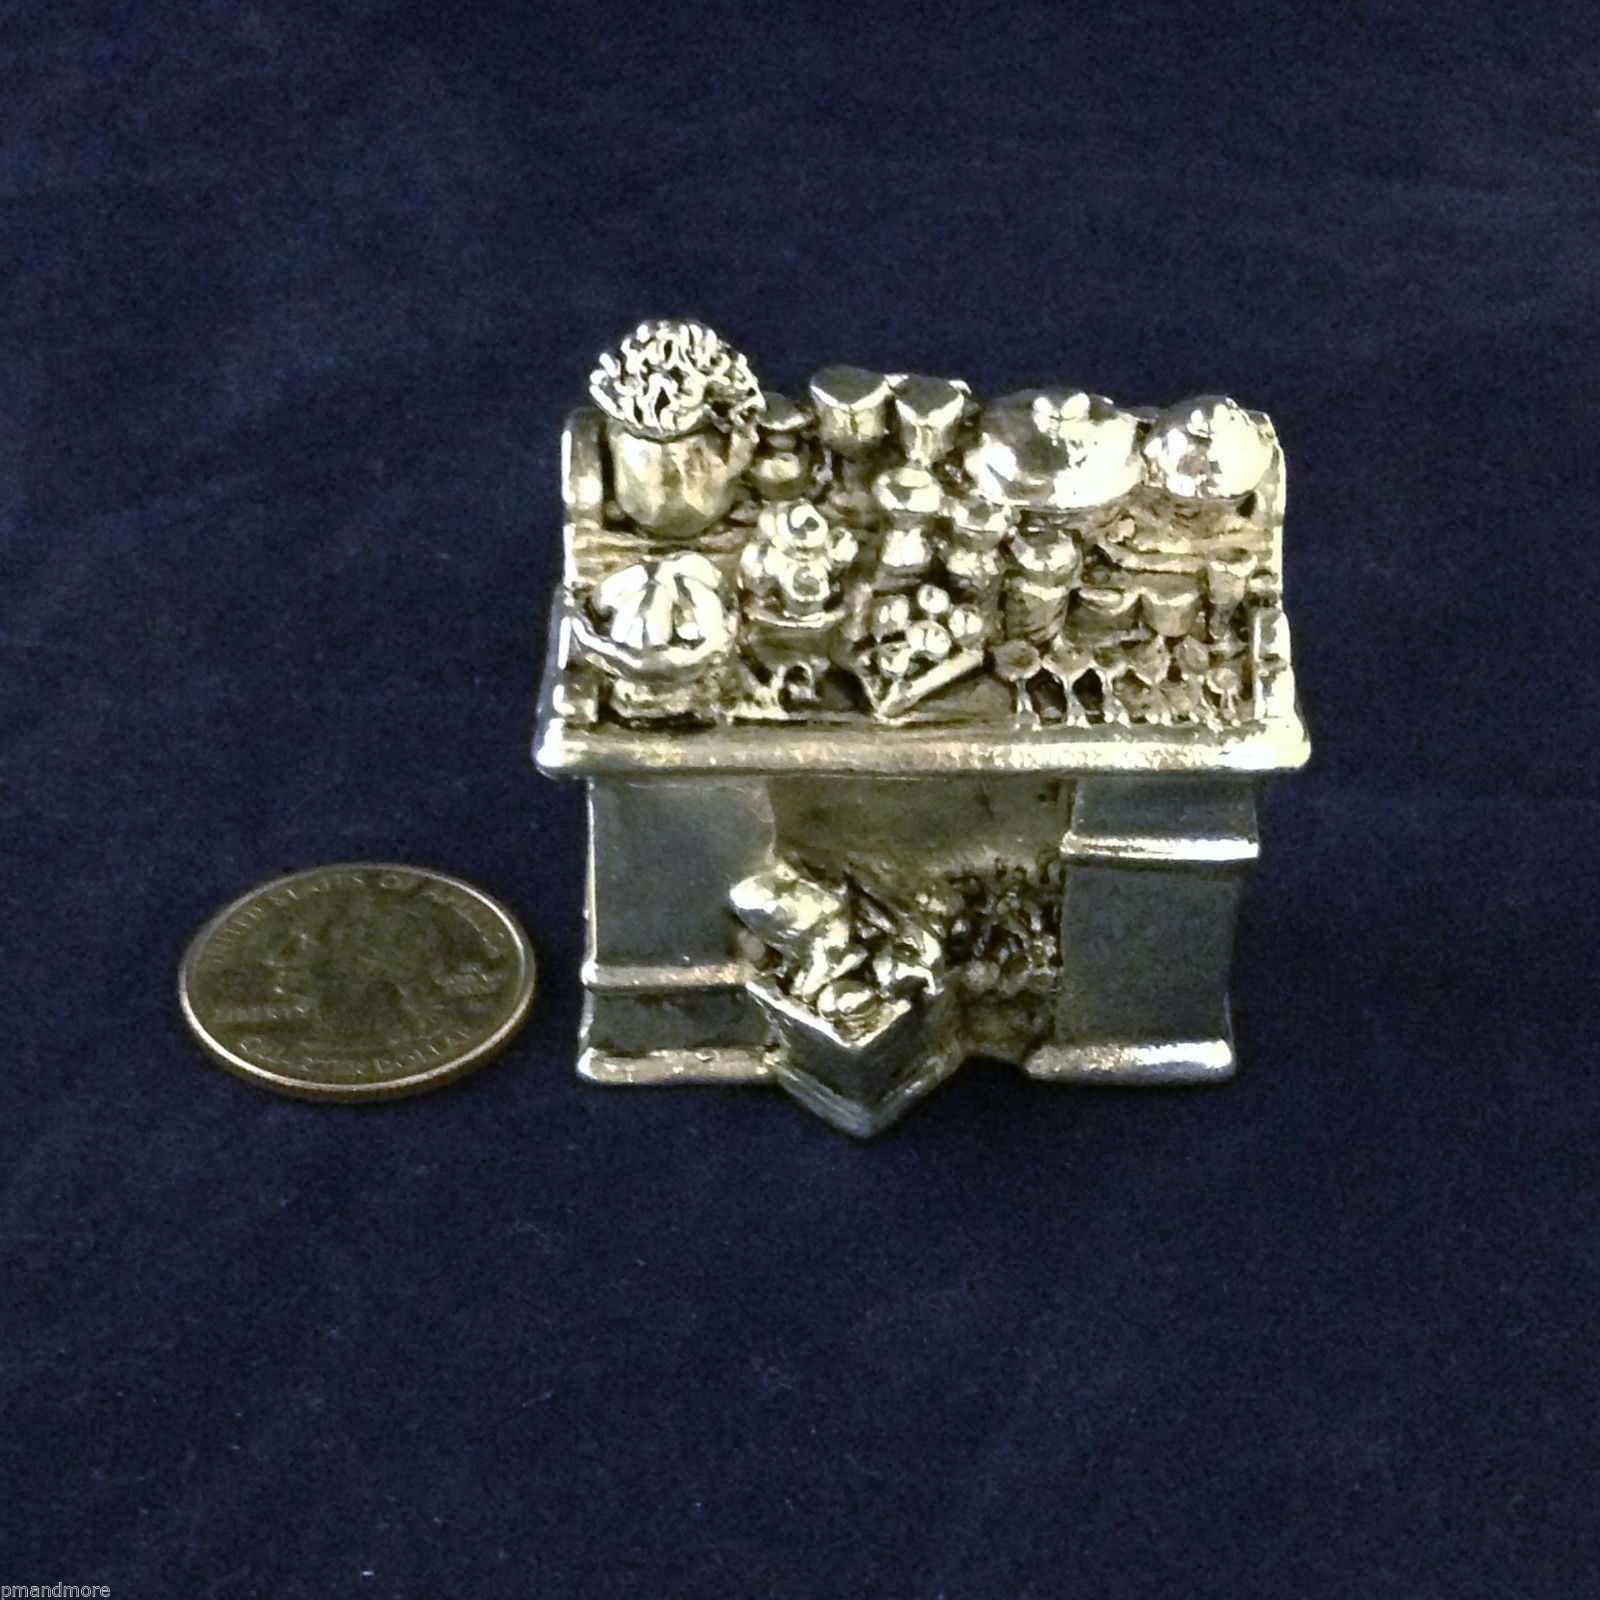 .925 Sterling Silver Decorative Art Dollhouse miniature Kitchen - Complete!